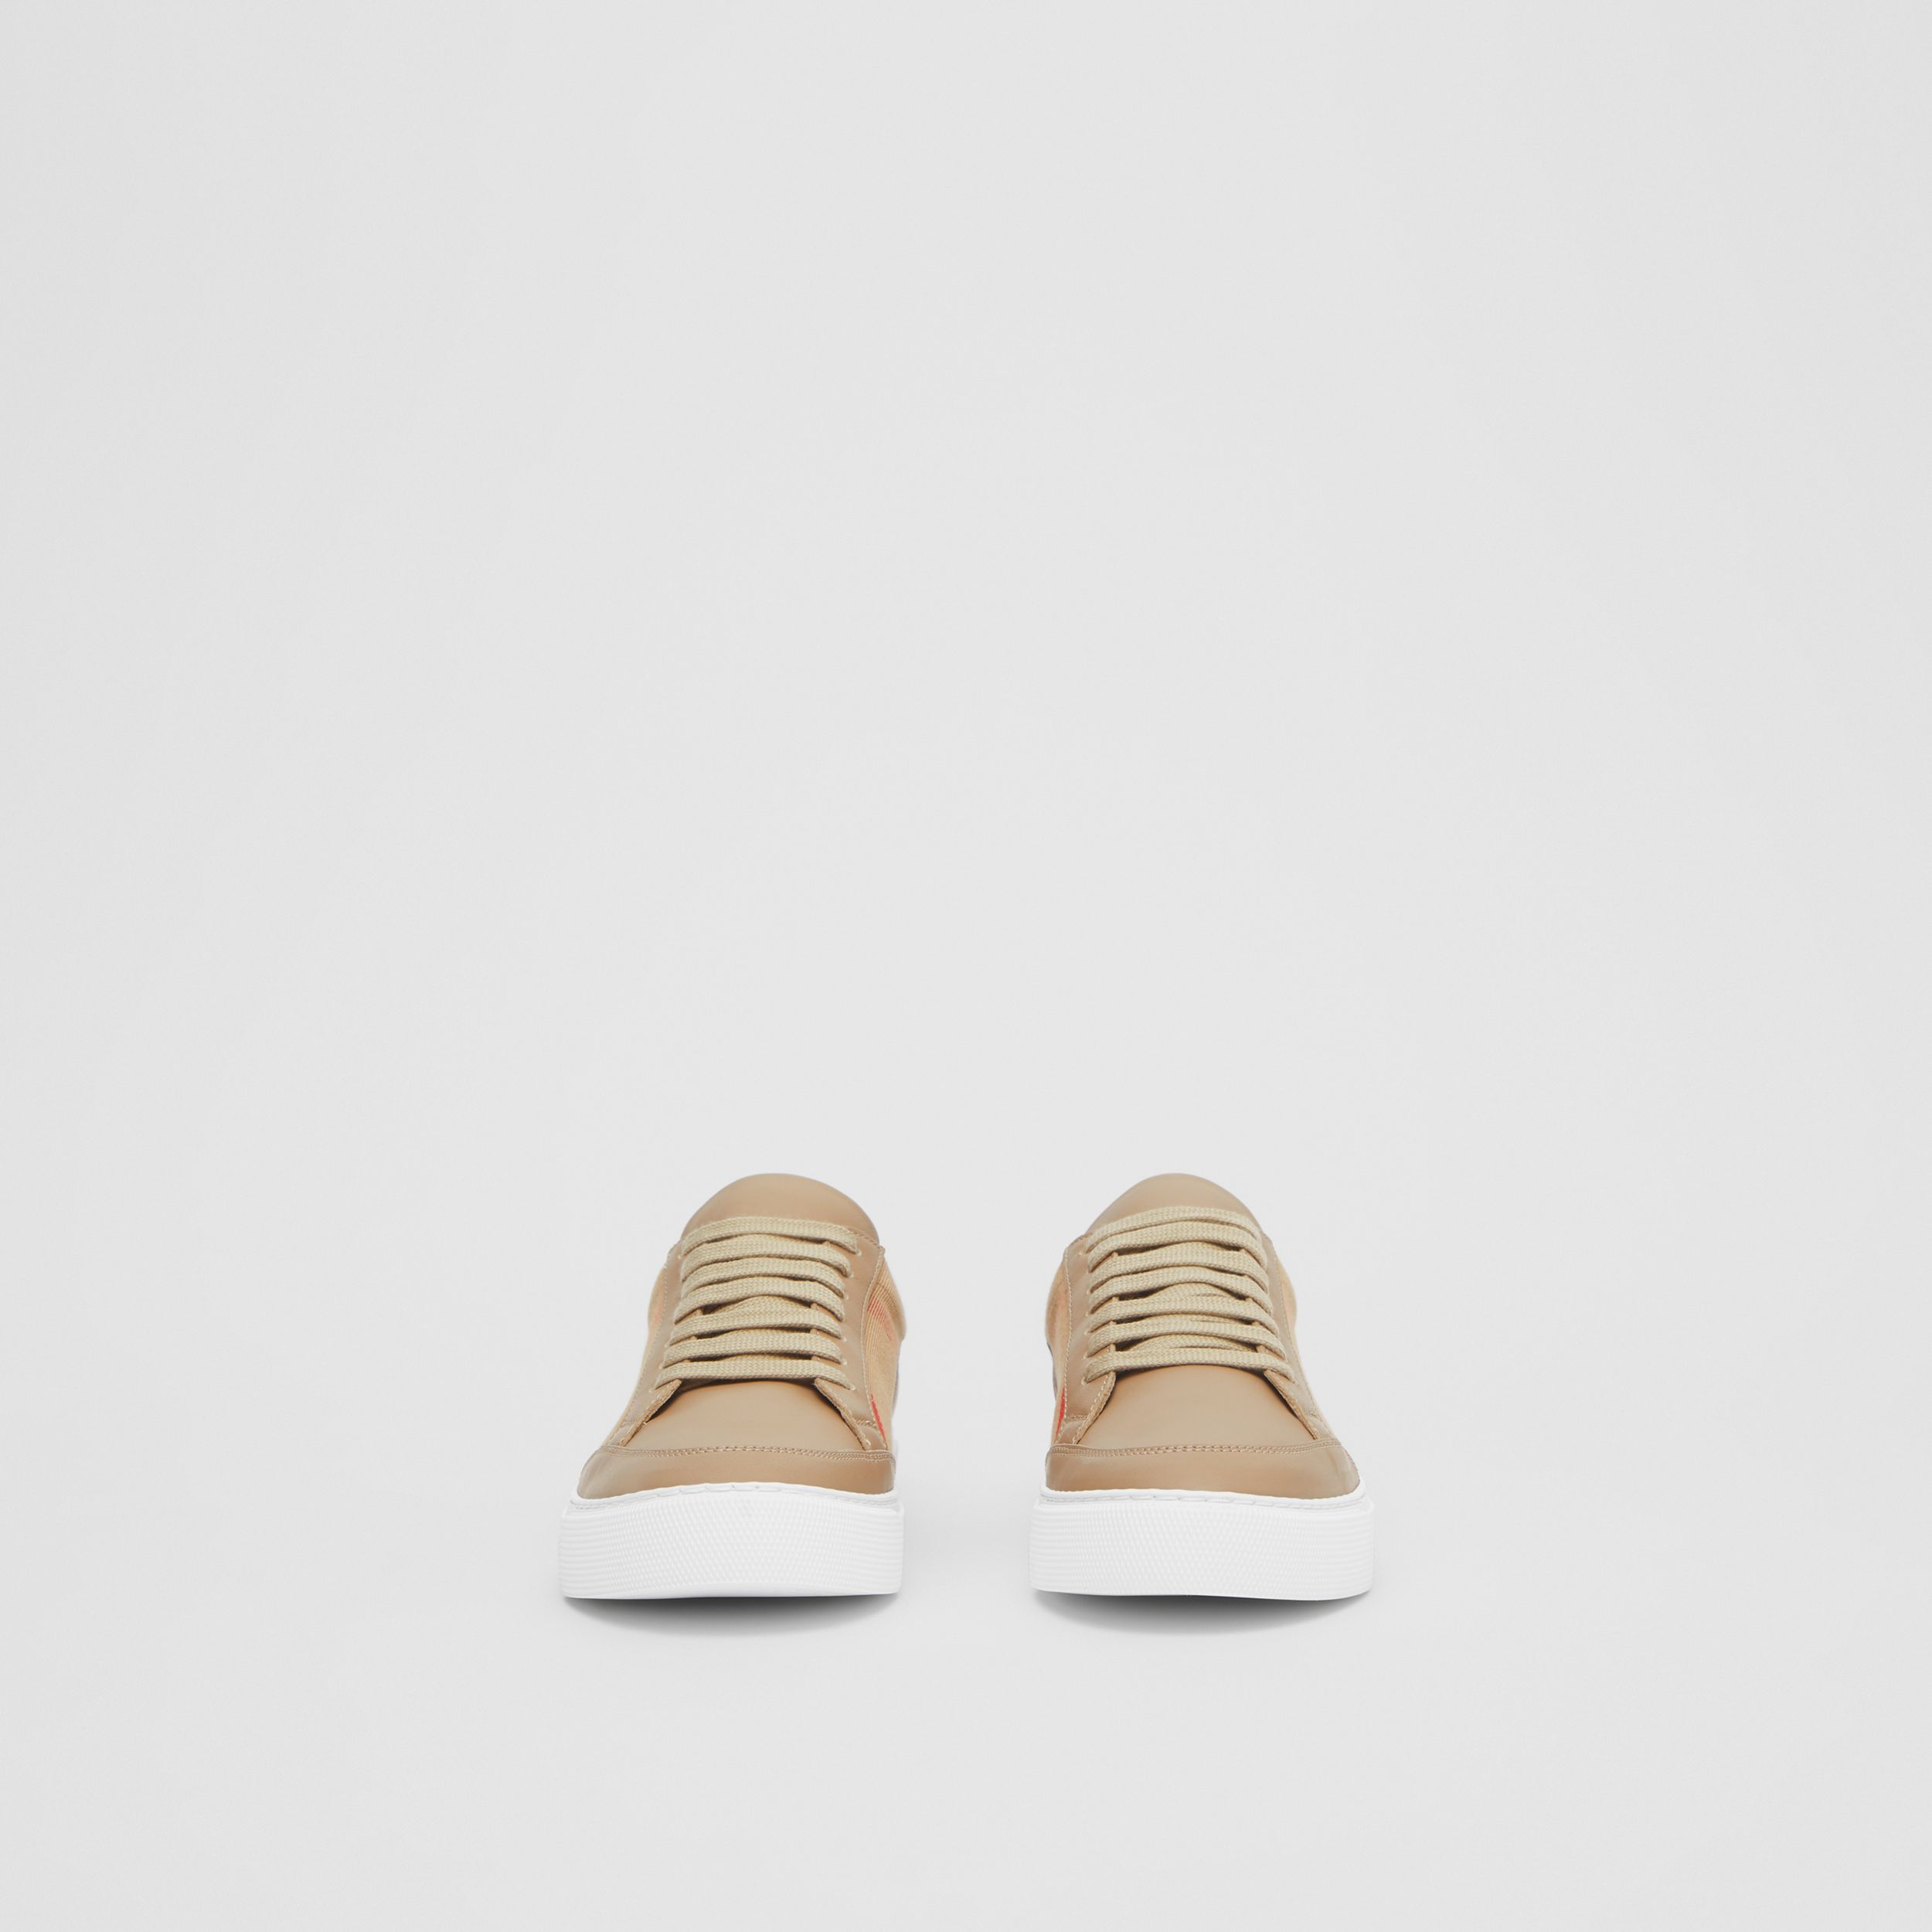 House Check and Leather Sneakers in Tan - Women | Burberry Canada - 4